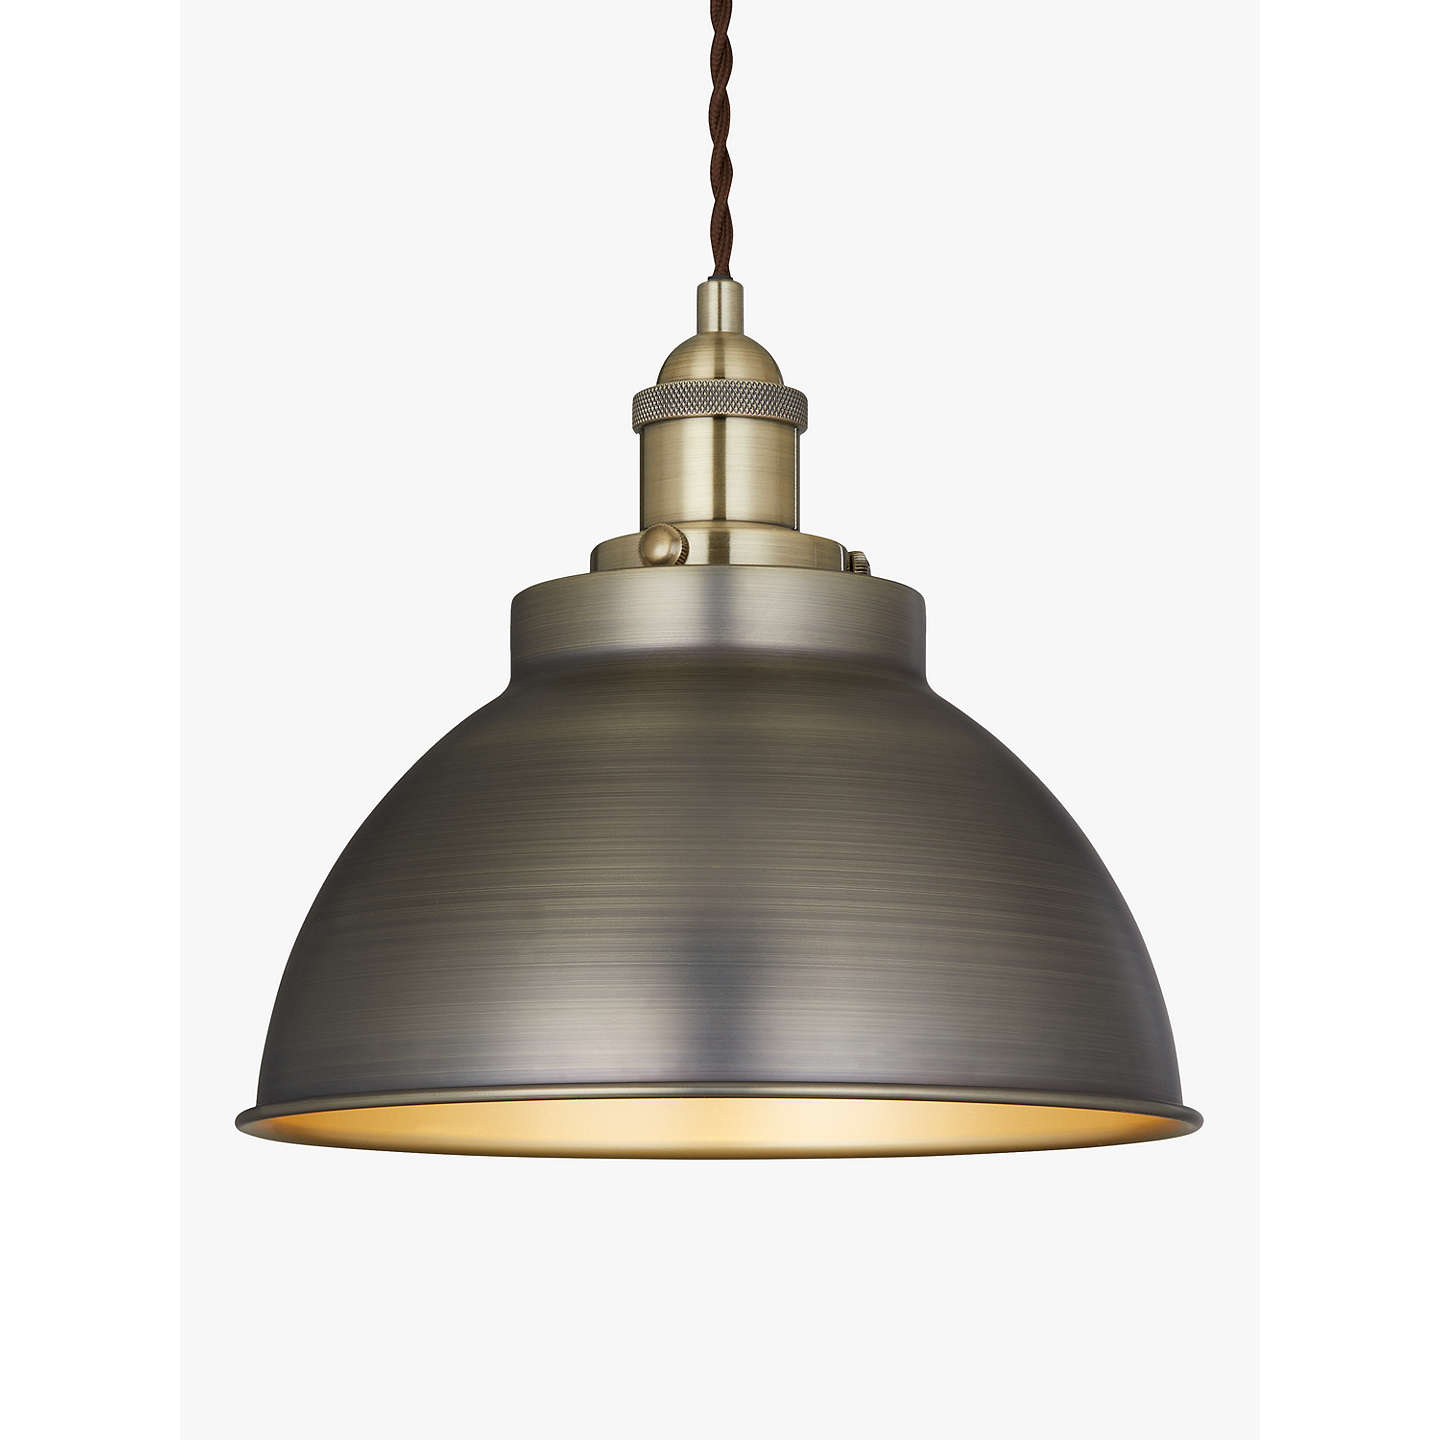 ryker bronx pendant wayfair light ivy lighting reviews pdx bowl